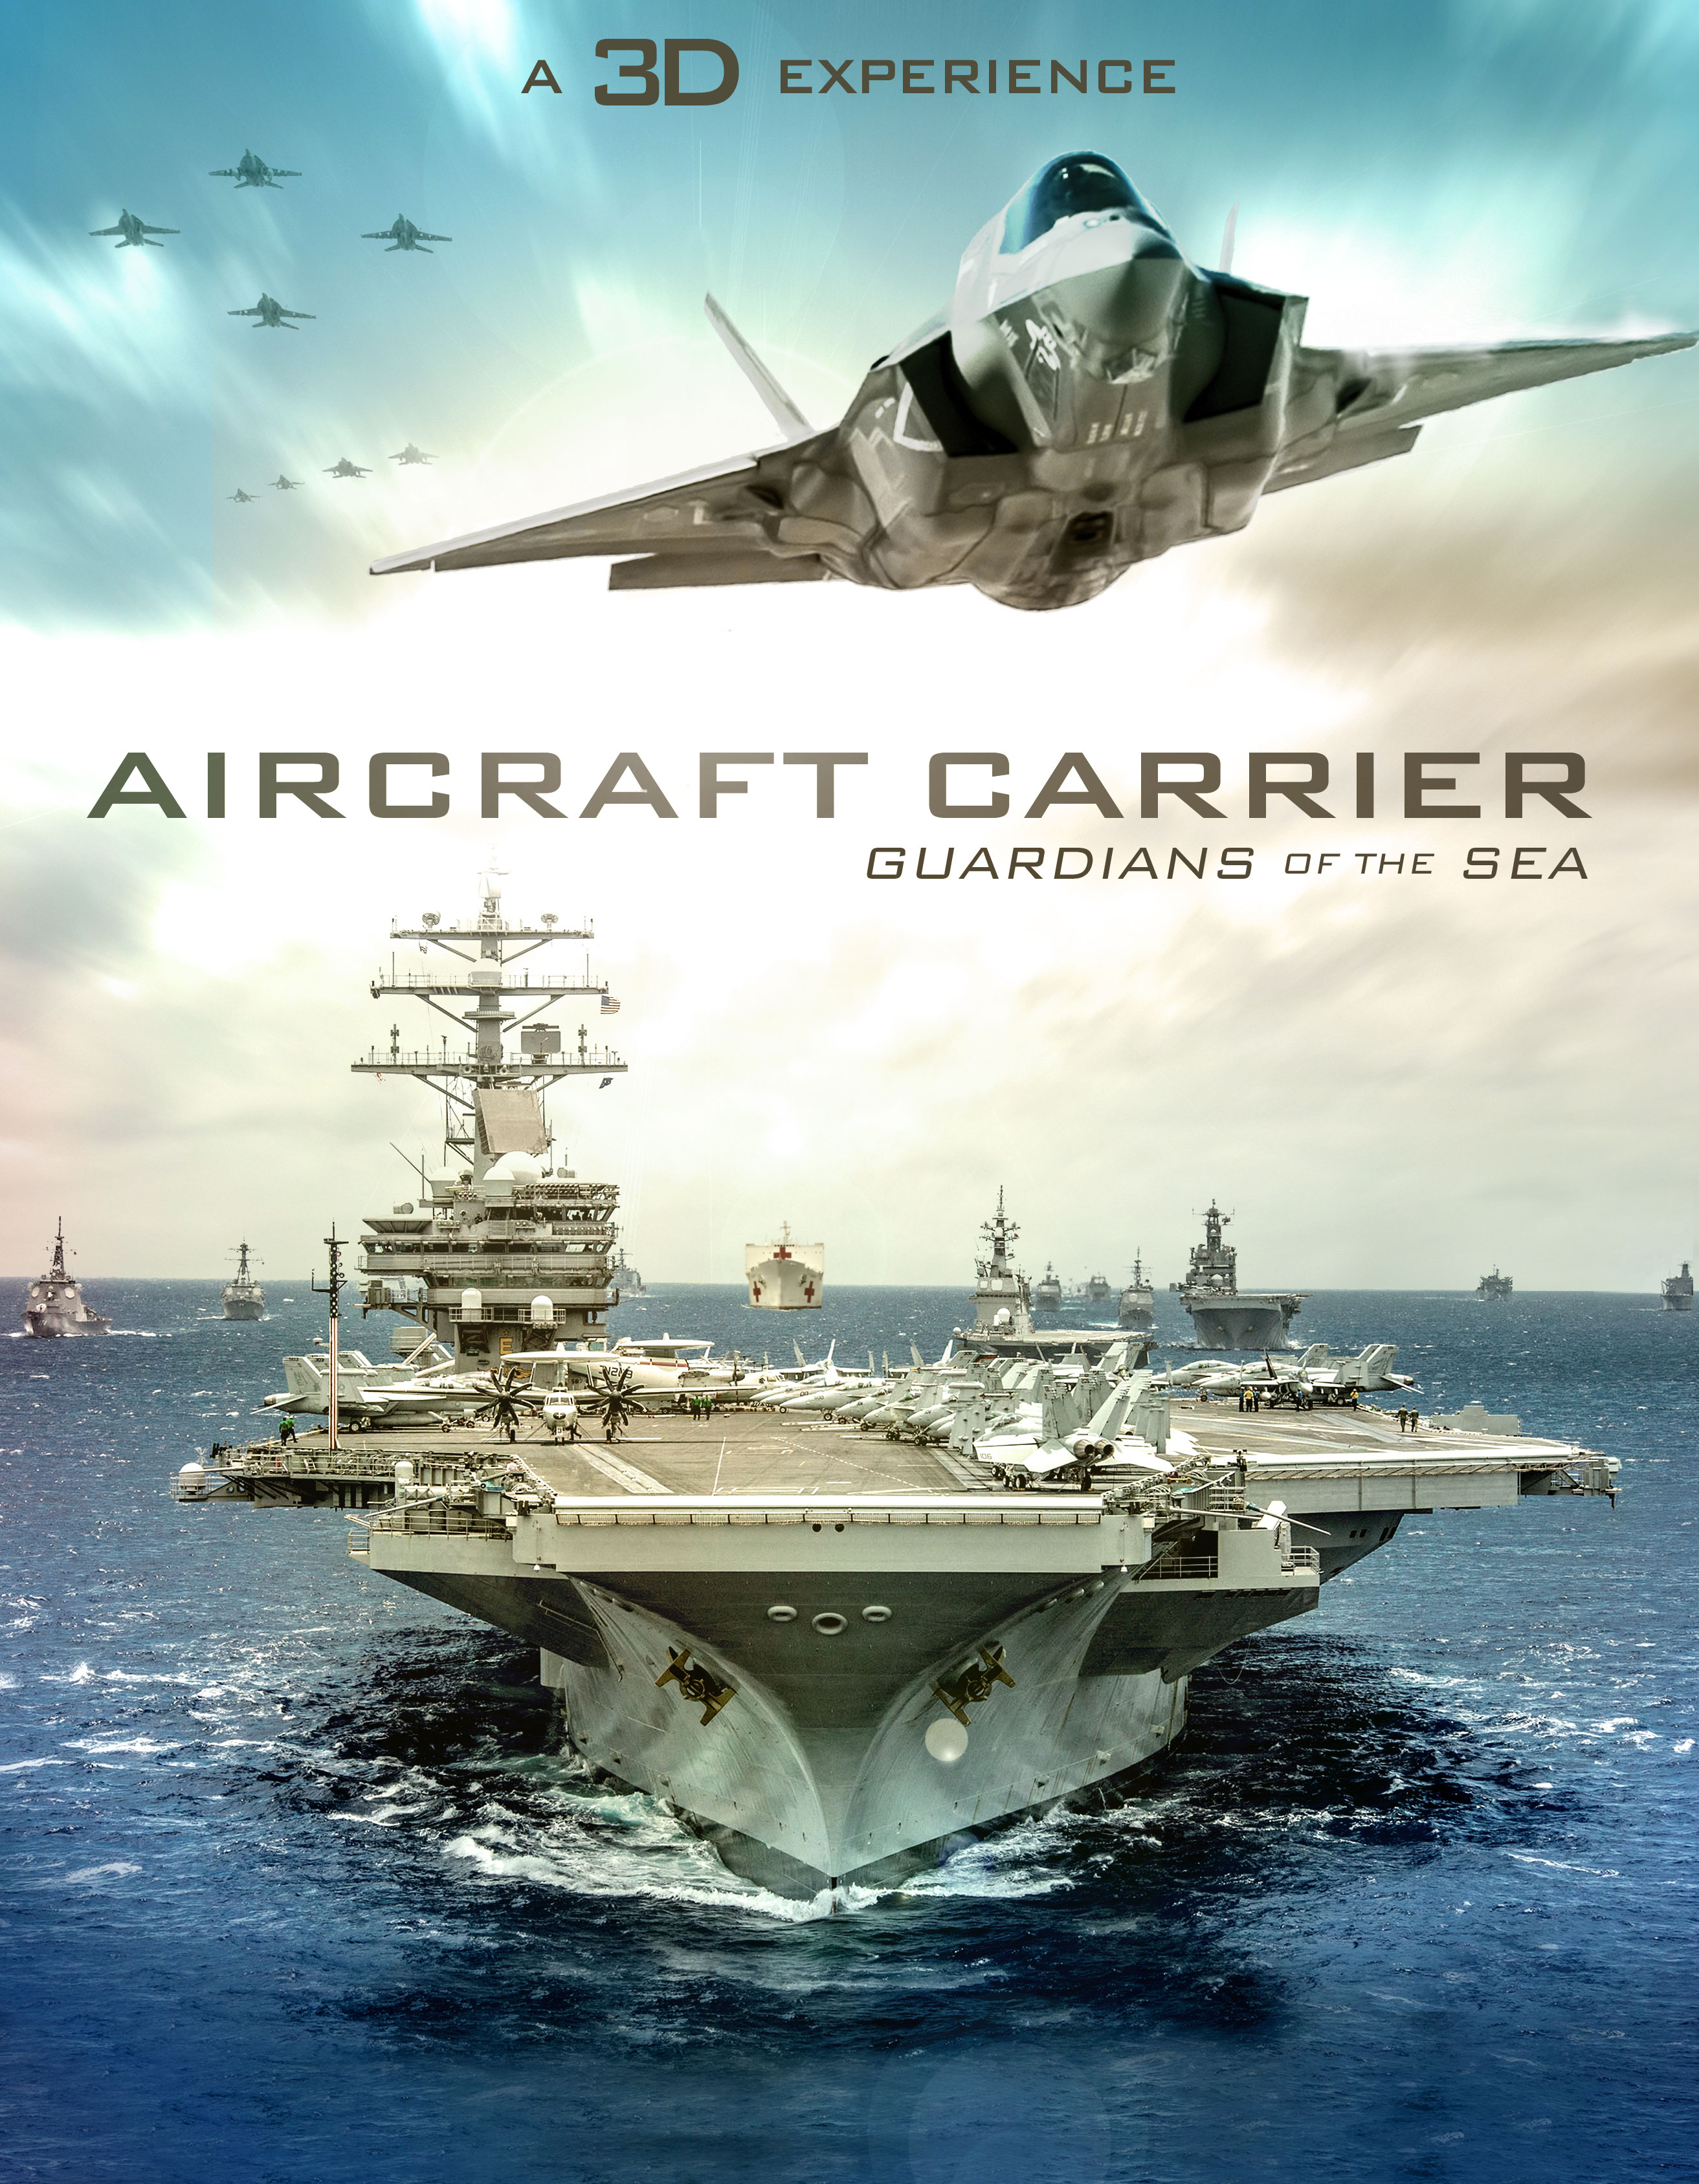 Aircraft Carrier Guardians of the Sea